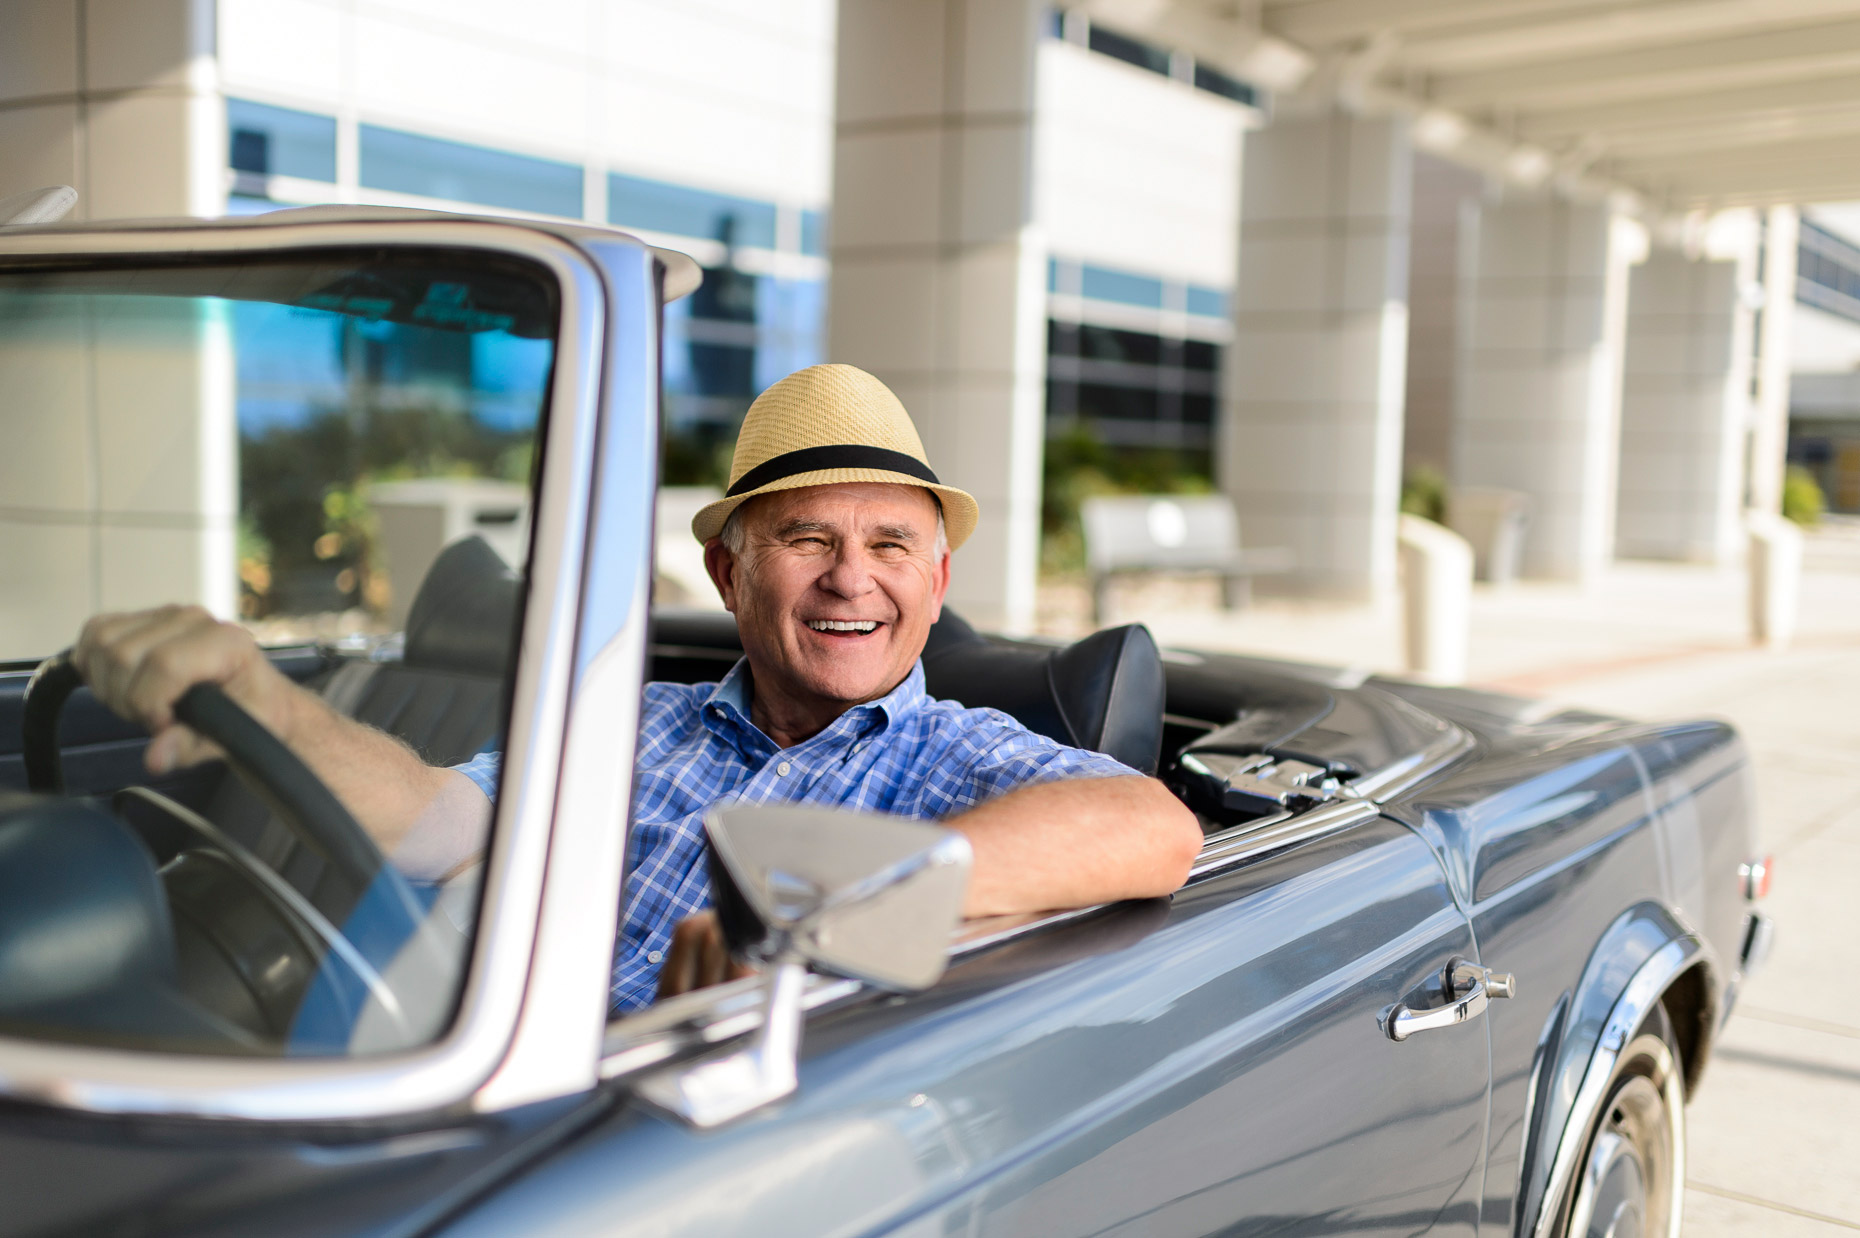 Active Lifestyle Photography - Older man driving a car